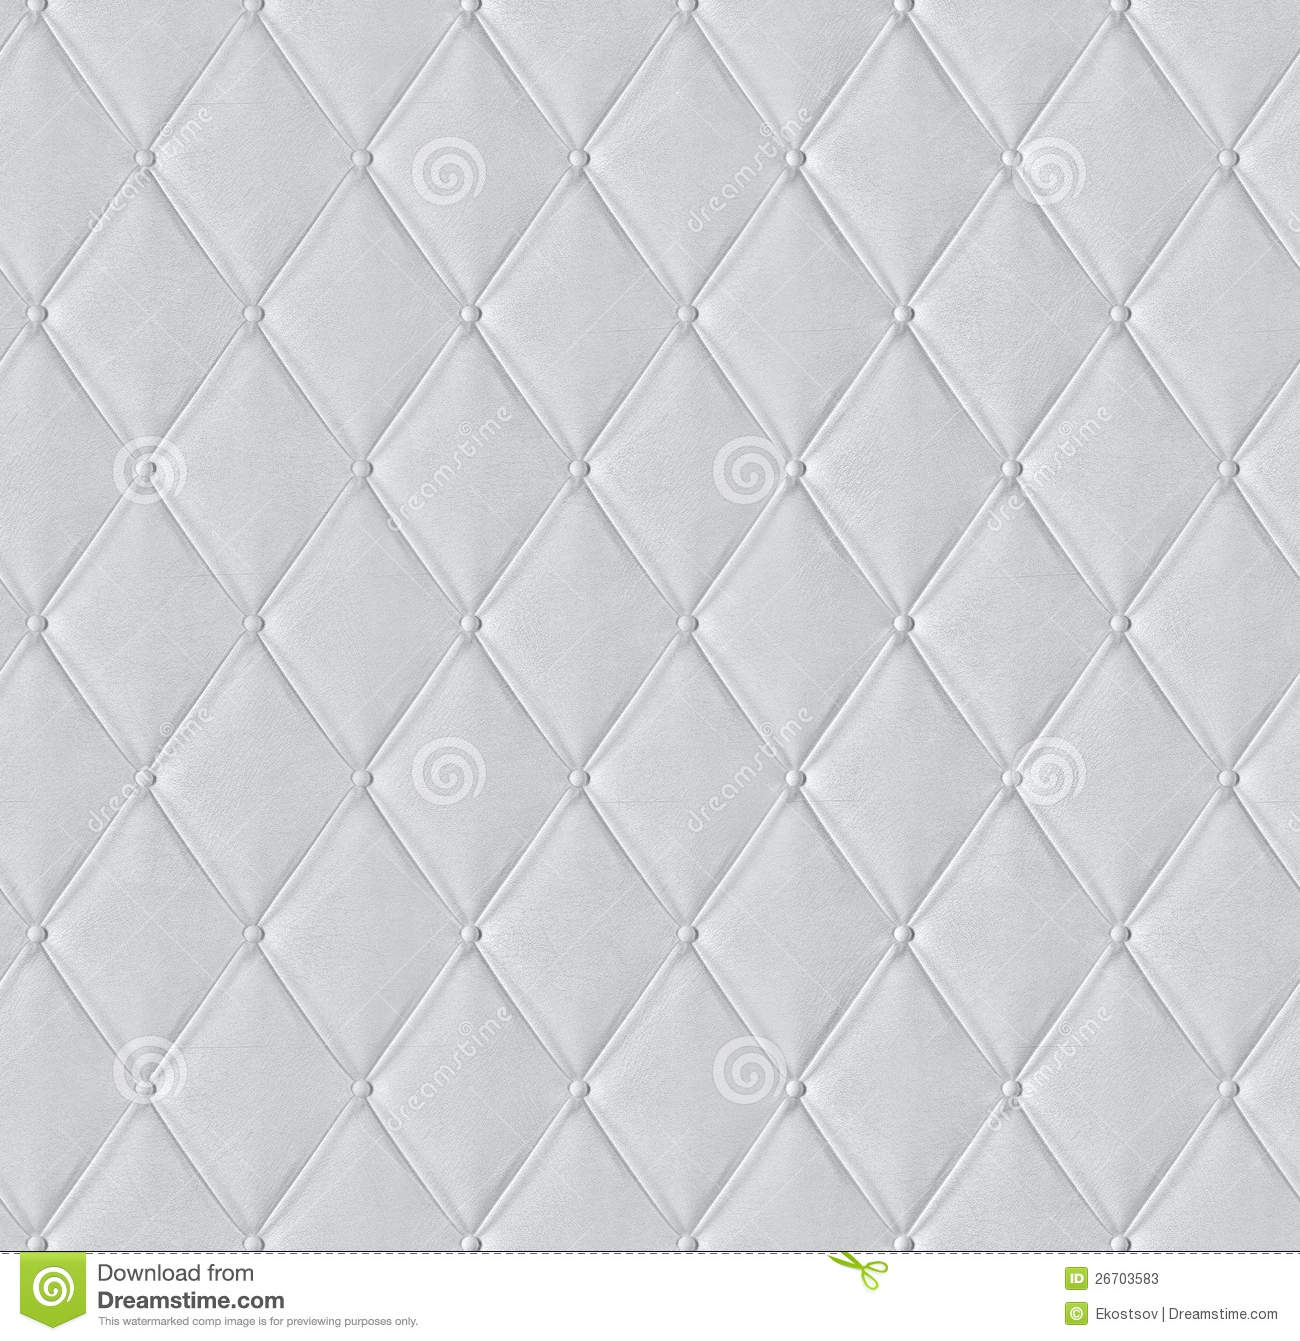 White Quilted Leather Tiled Texture Stock Image